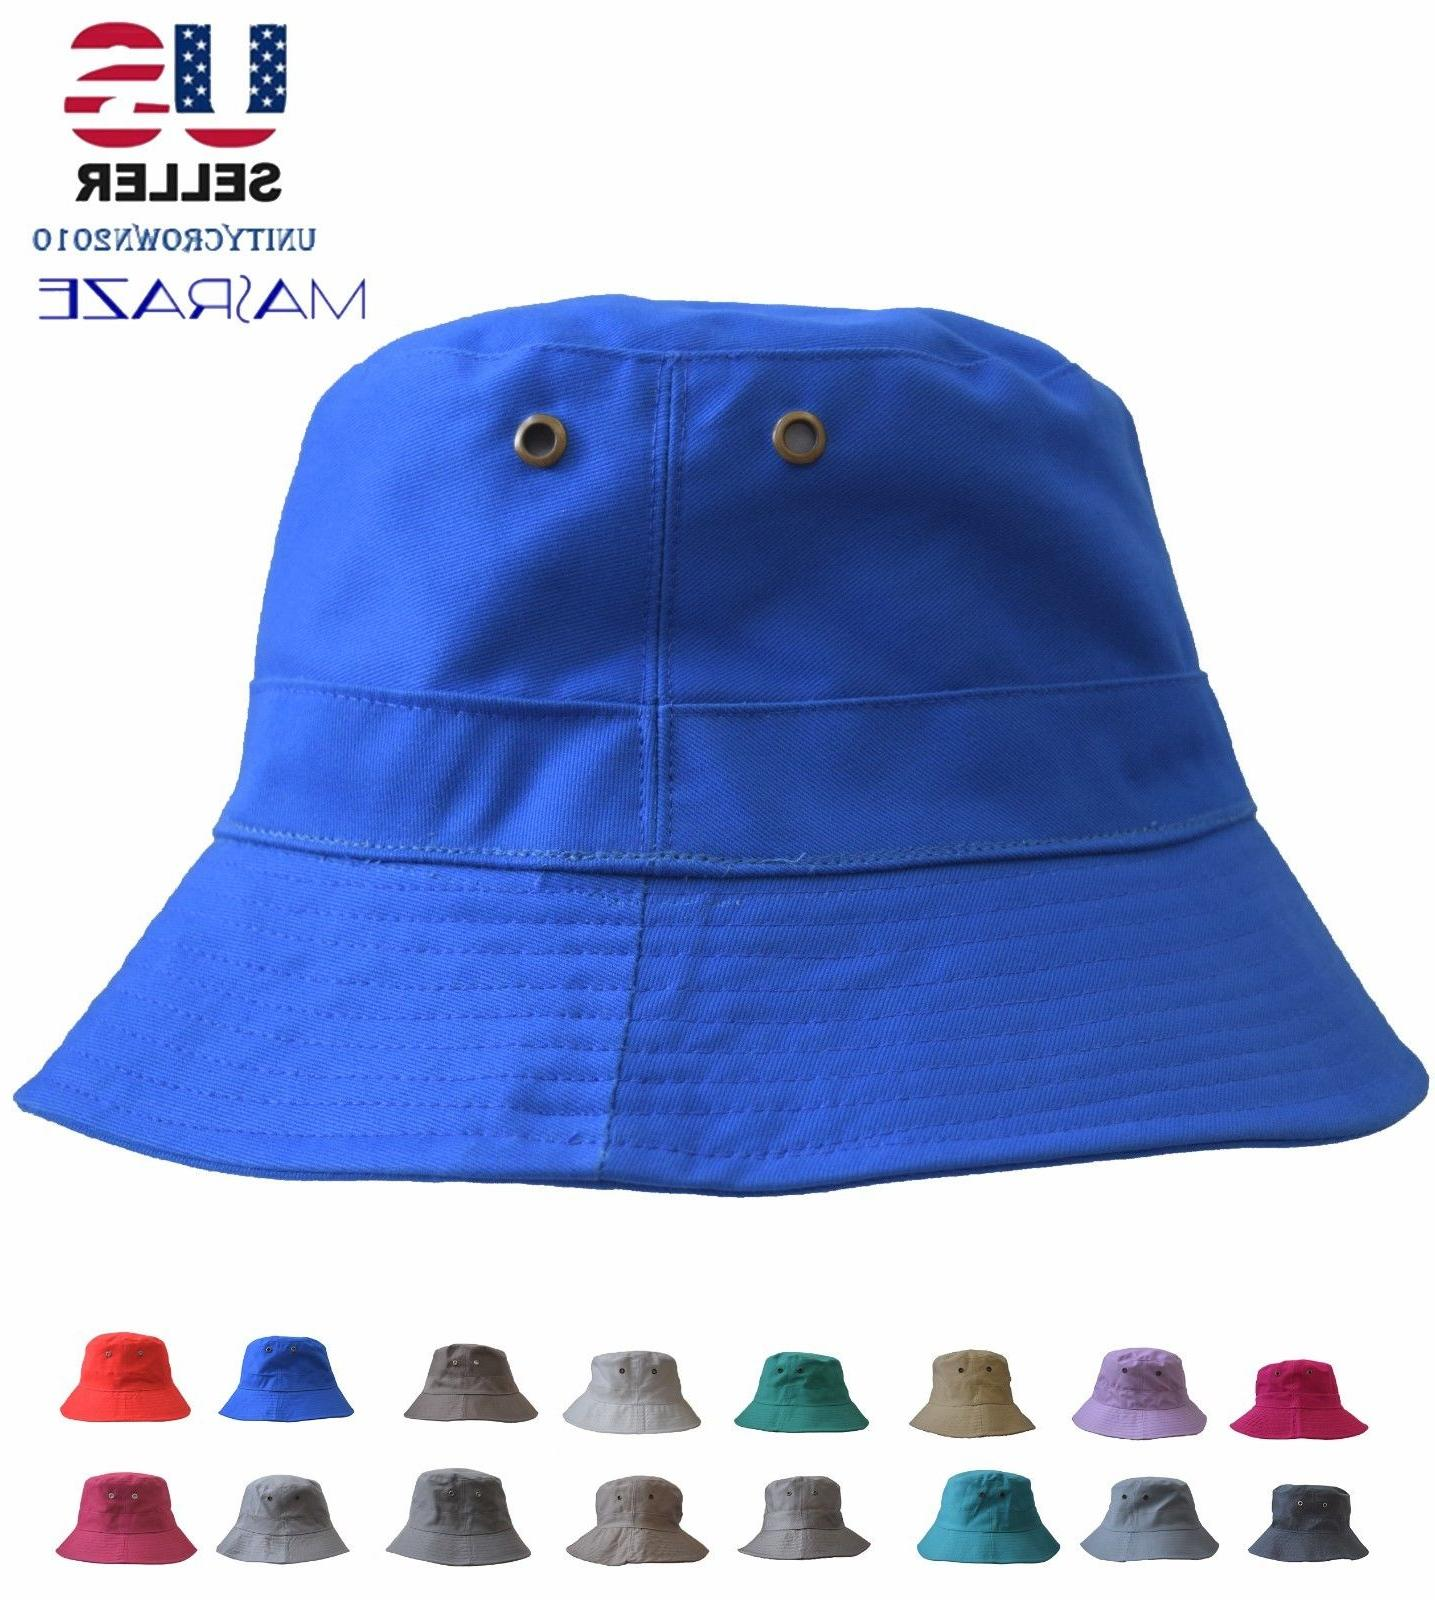 Boonie Bucket Hat Cap Cotton Fishing Brim visor Sun Safari S